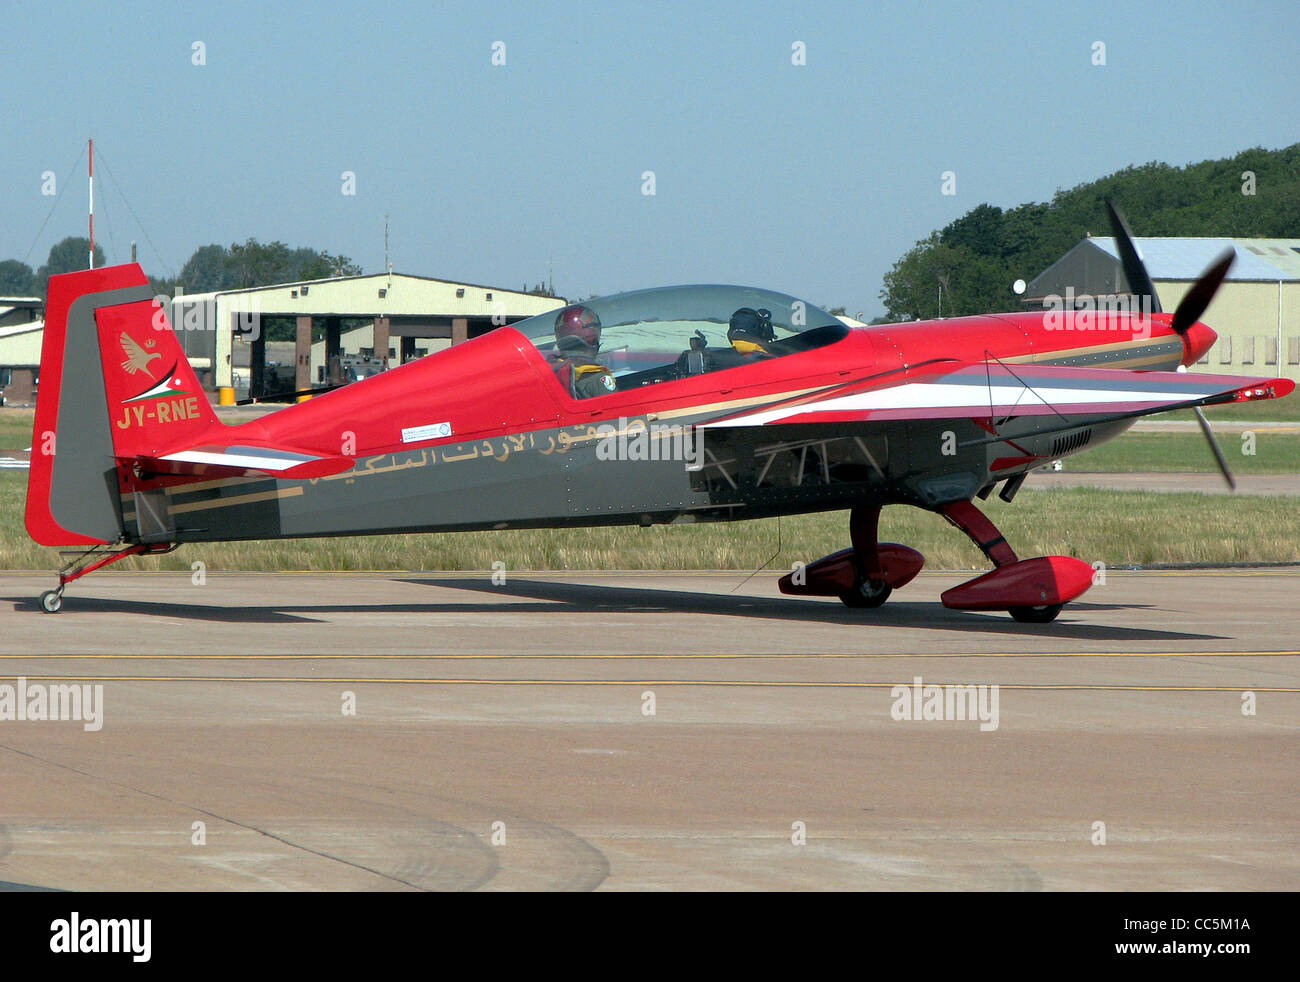 An Extra EA300S (JY-RNE) of the Royal Jordanian Falcons display team taxis for takeoff at the Royal International - Stock Image